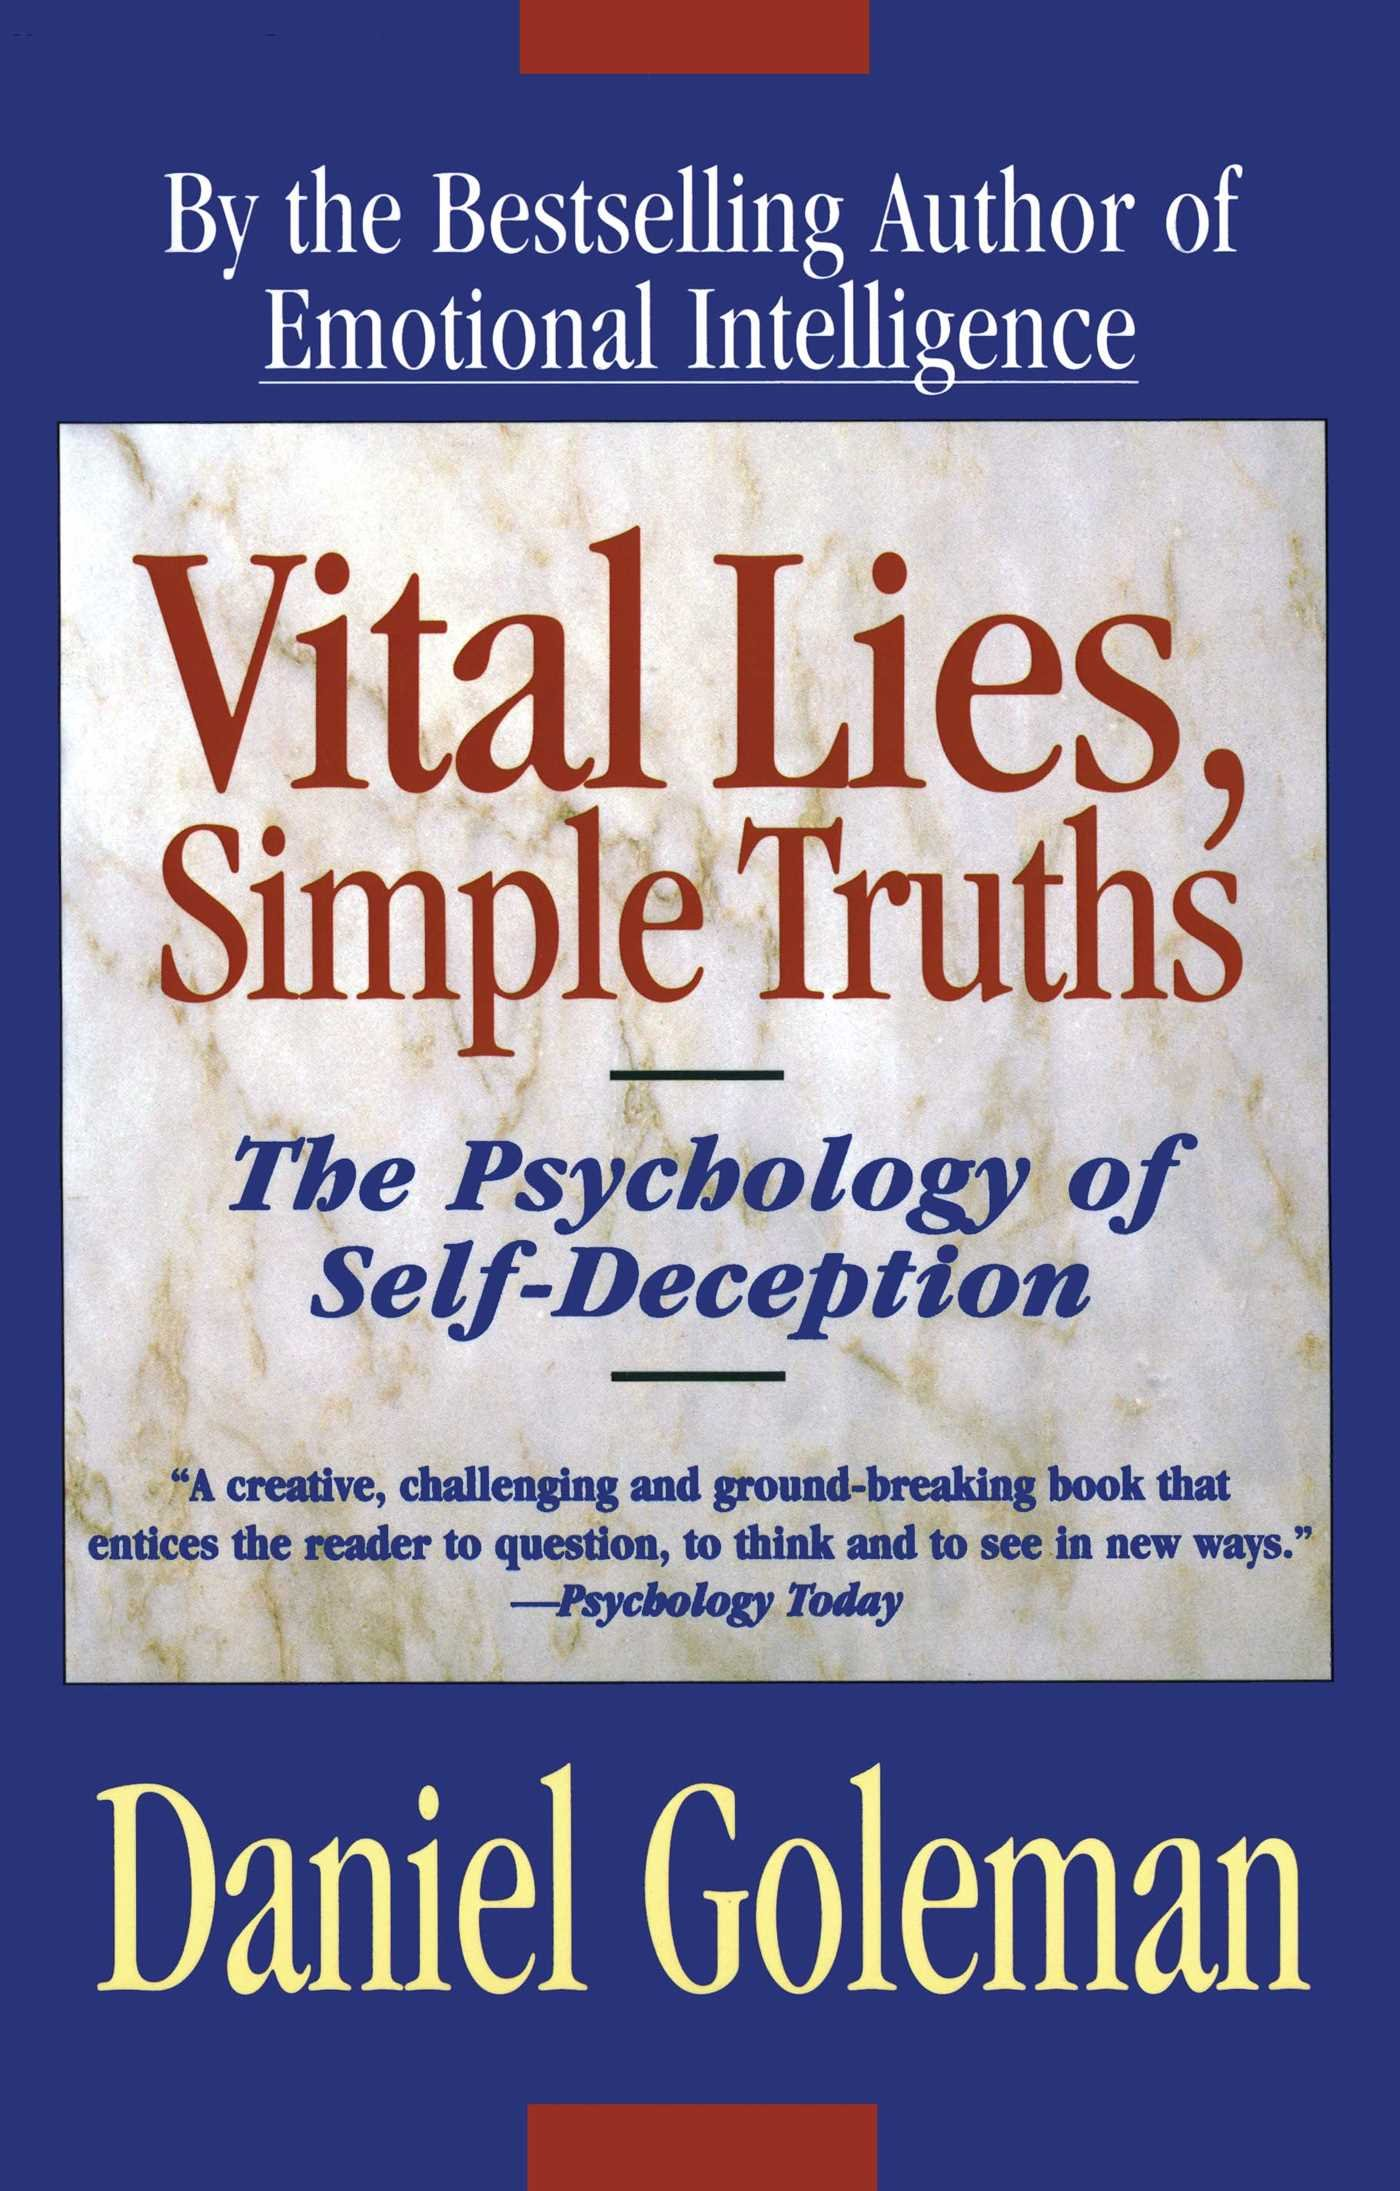 short essay on emotional intelligence emotional intelligence  vital lies simple truths the psychology of self deception vital lies simple truths the psychology of psychology essay questions